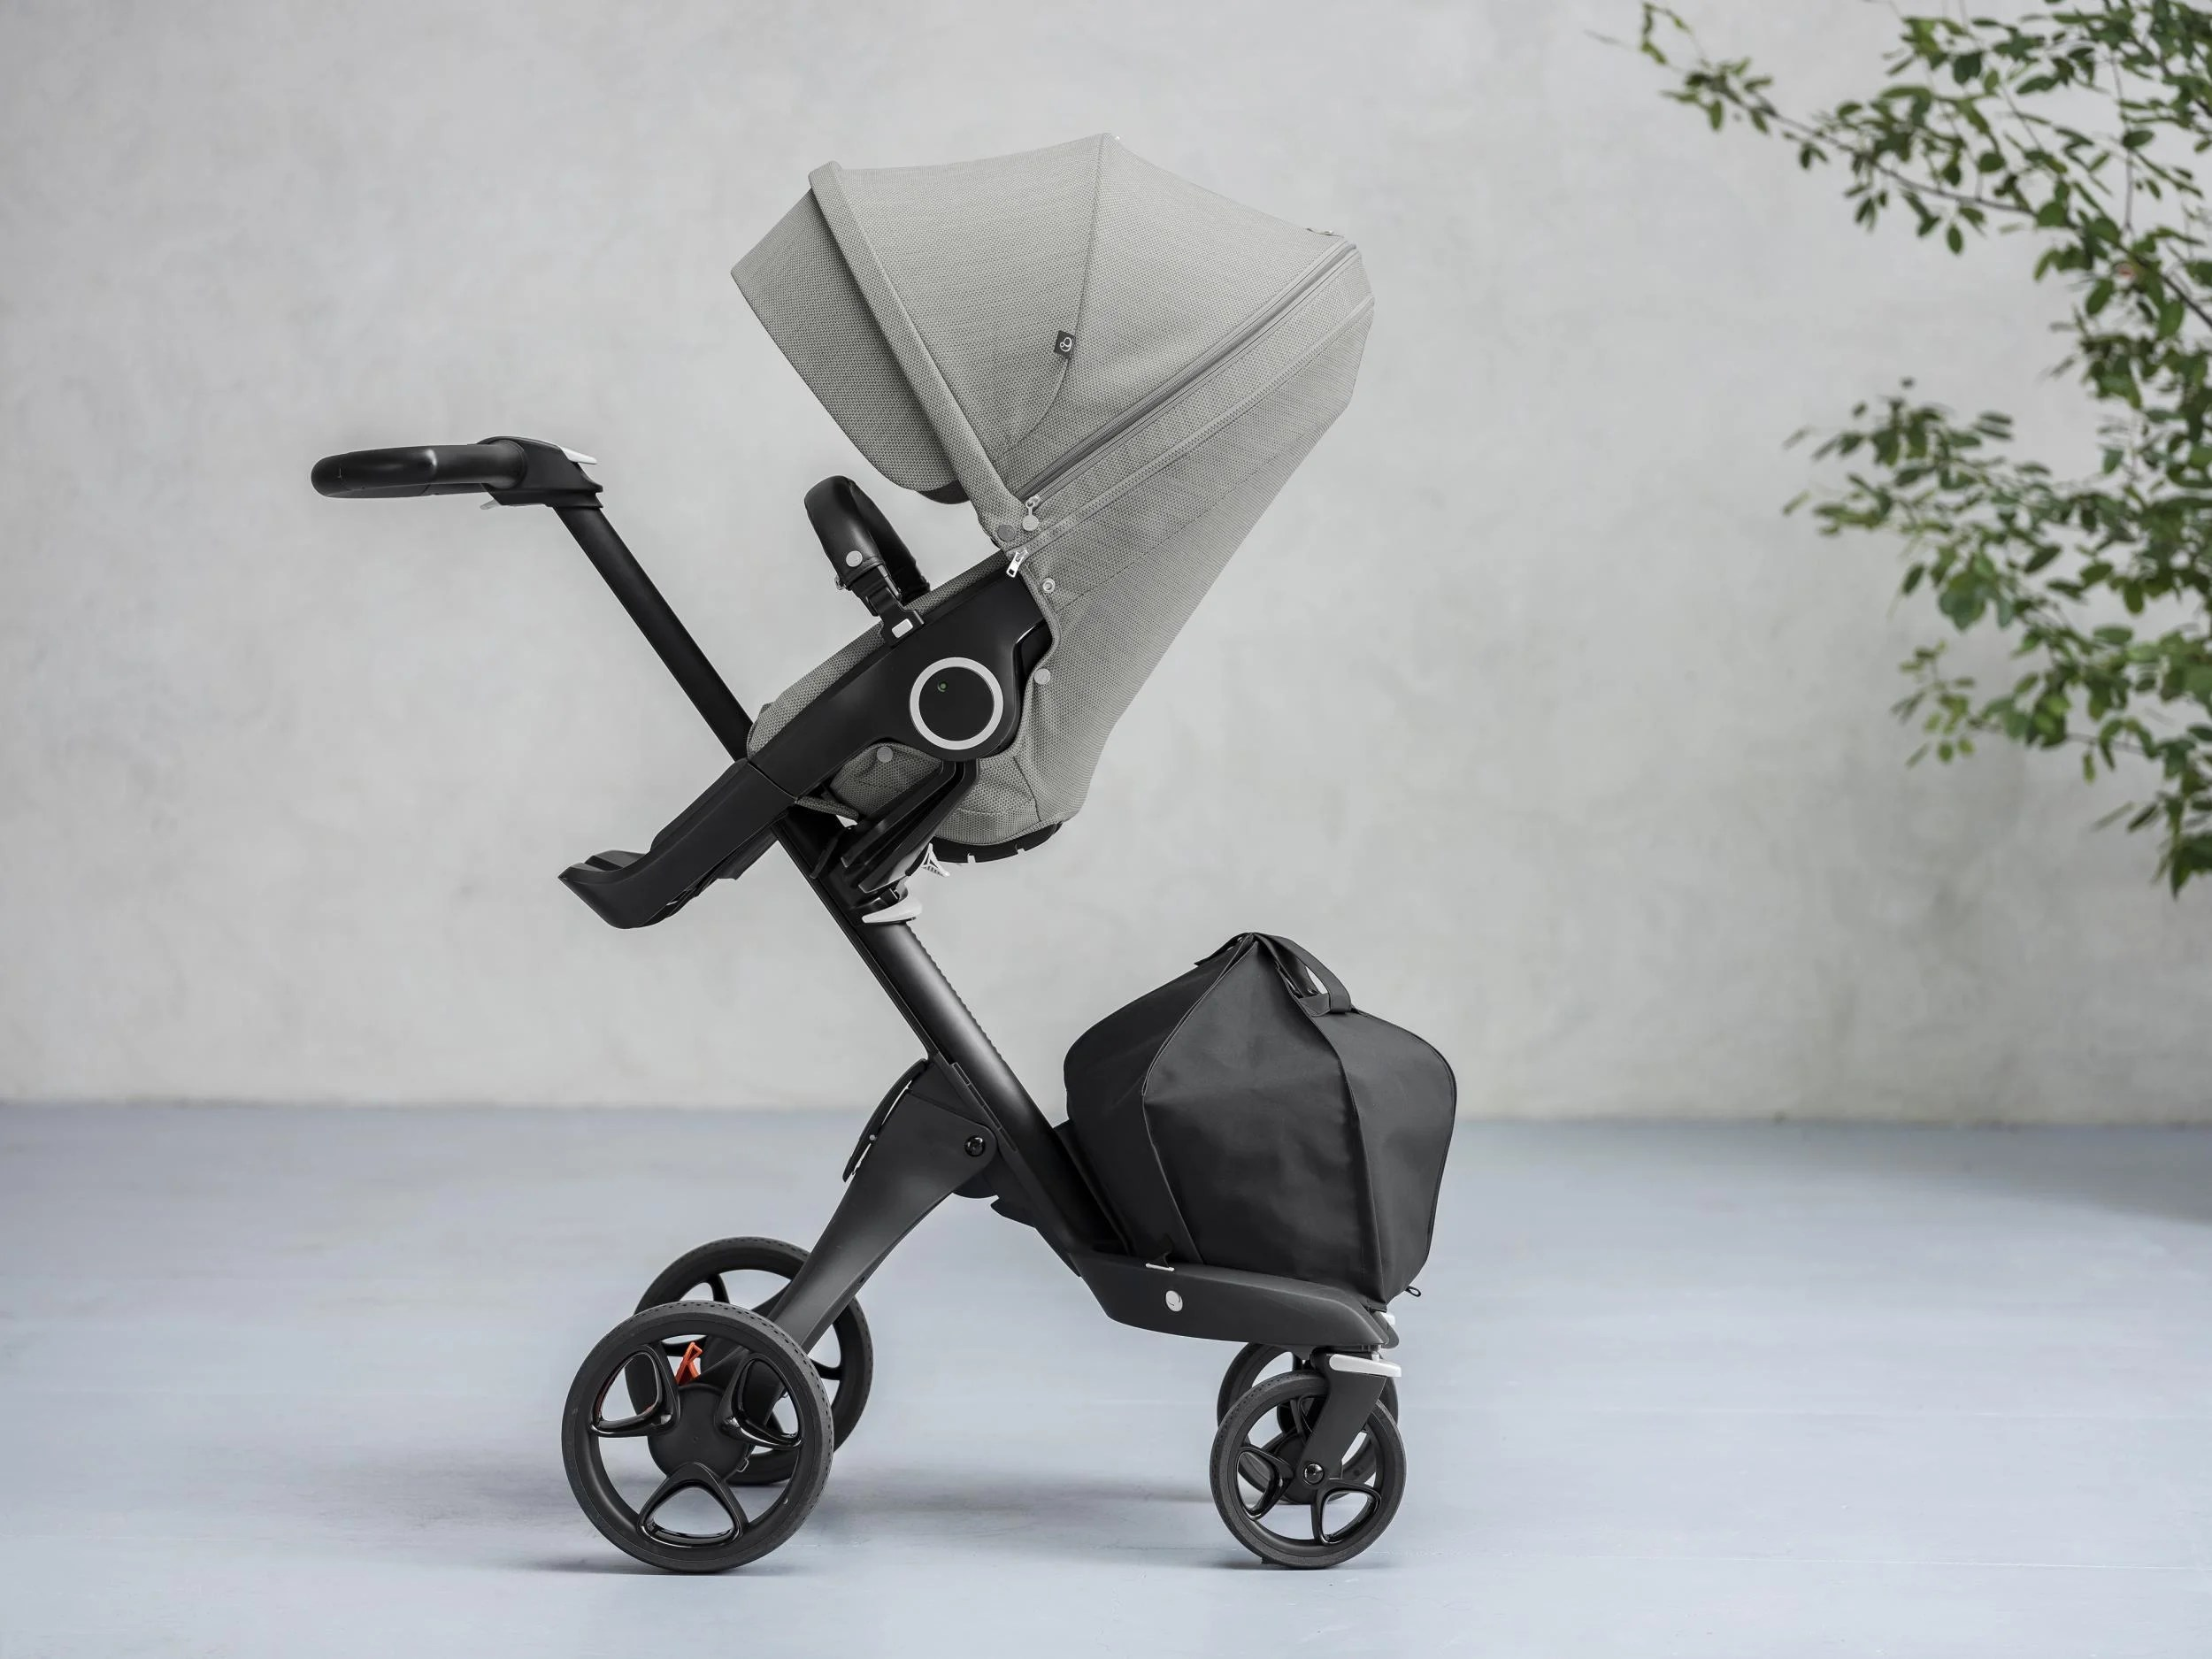 Joolz Pram Mothercare Best Pushchairs Choose From Buggies Prams And Strollers